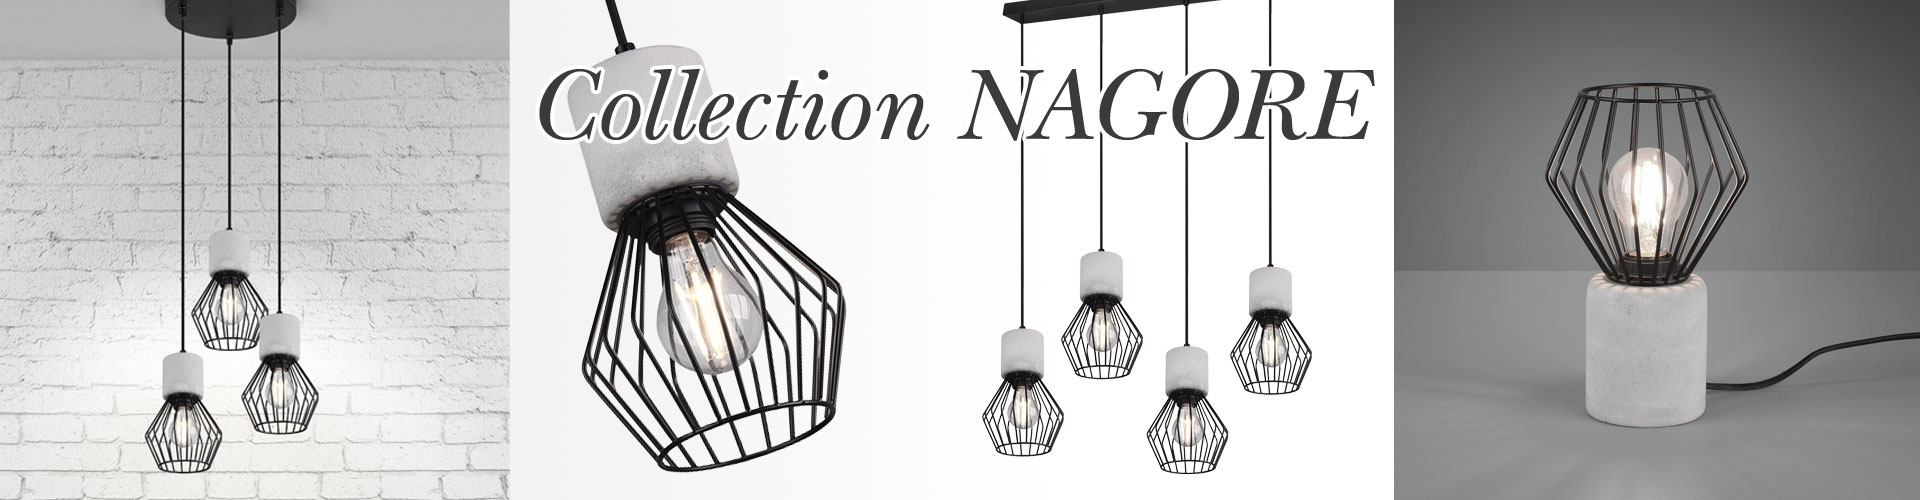 COLLECTION NAGORE